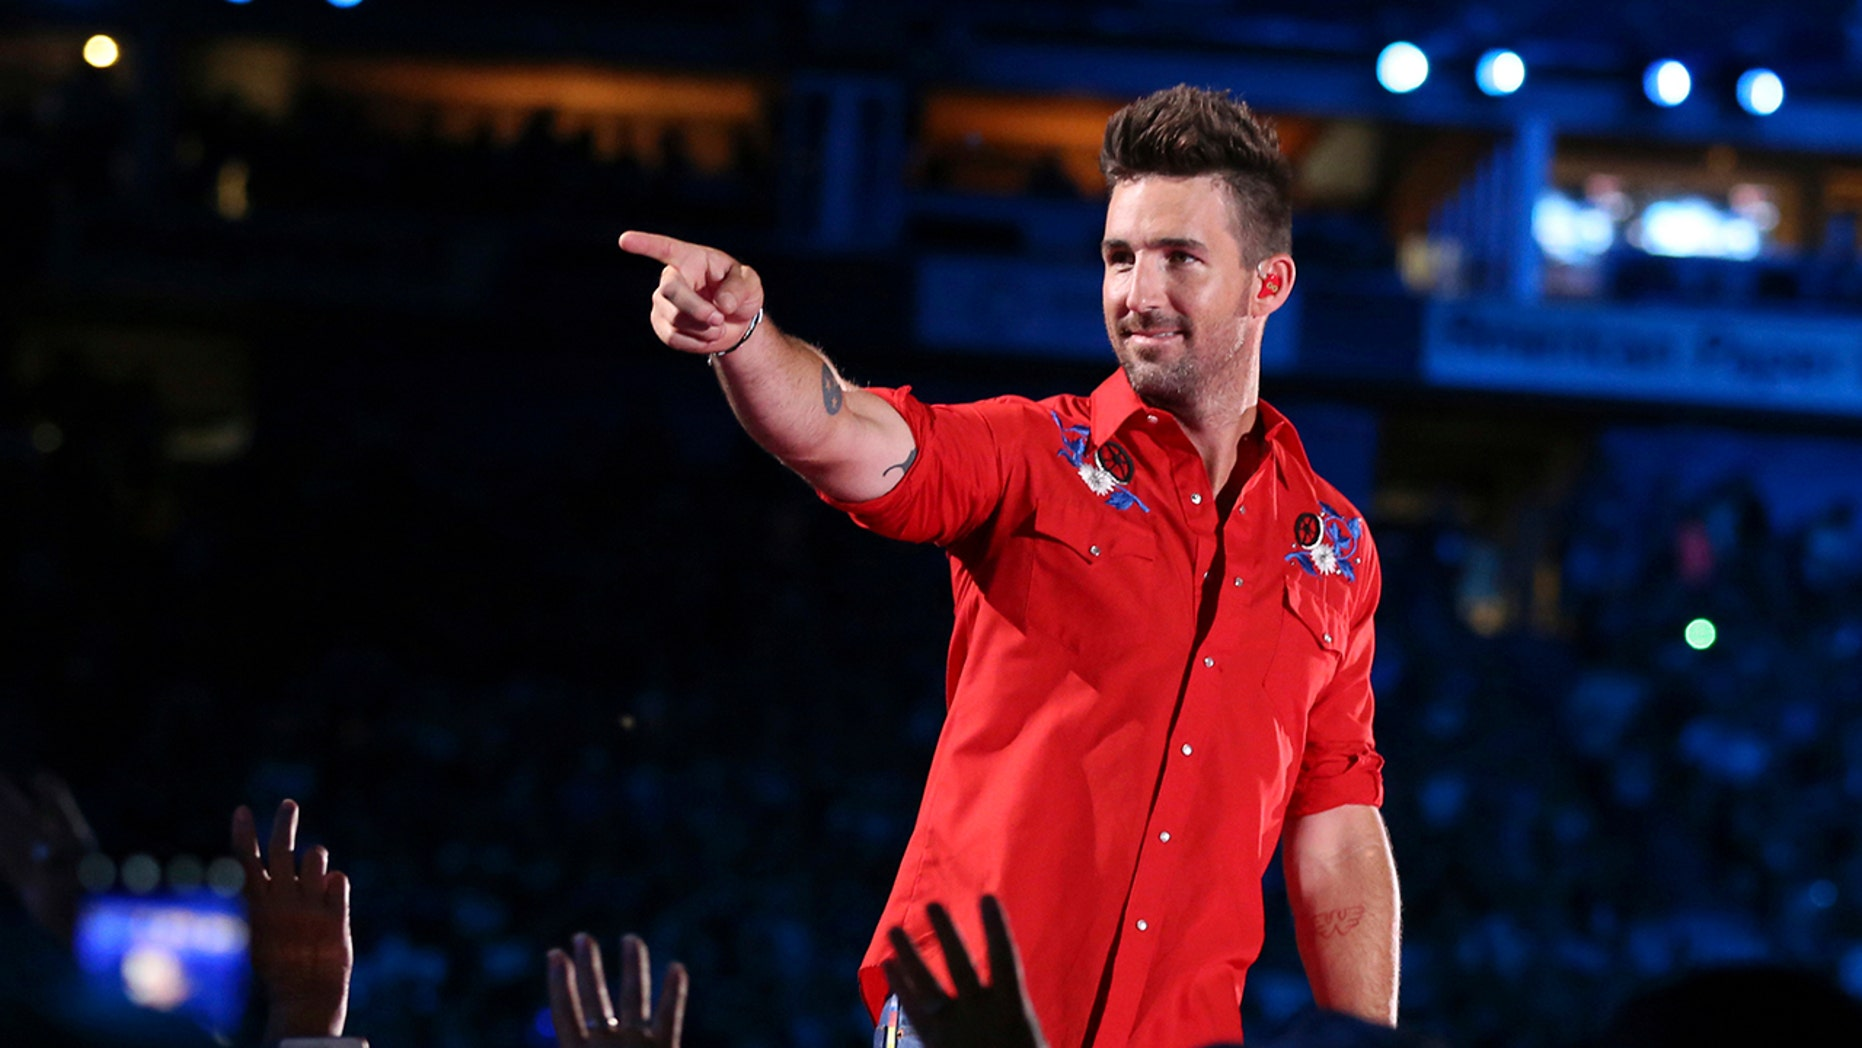 Country music star Jake Owen showed off his ability to rap on New York's Build Series on Monday. (Photo by Laura Roberts/Invision/AP, File)